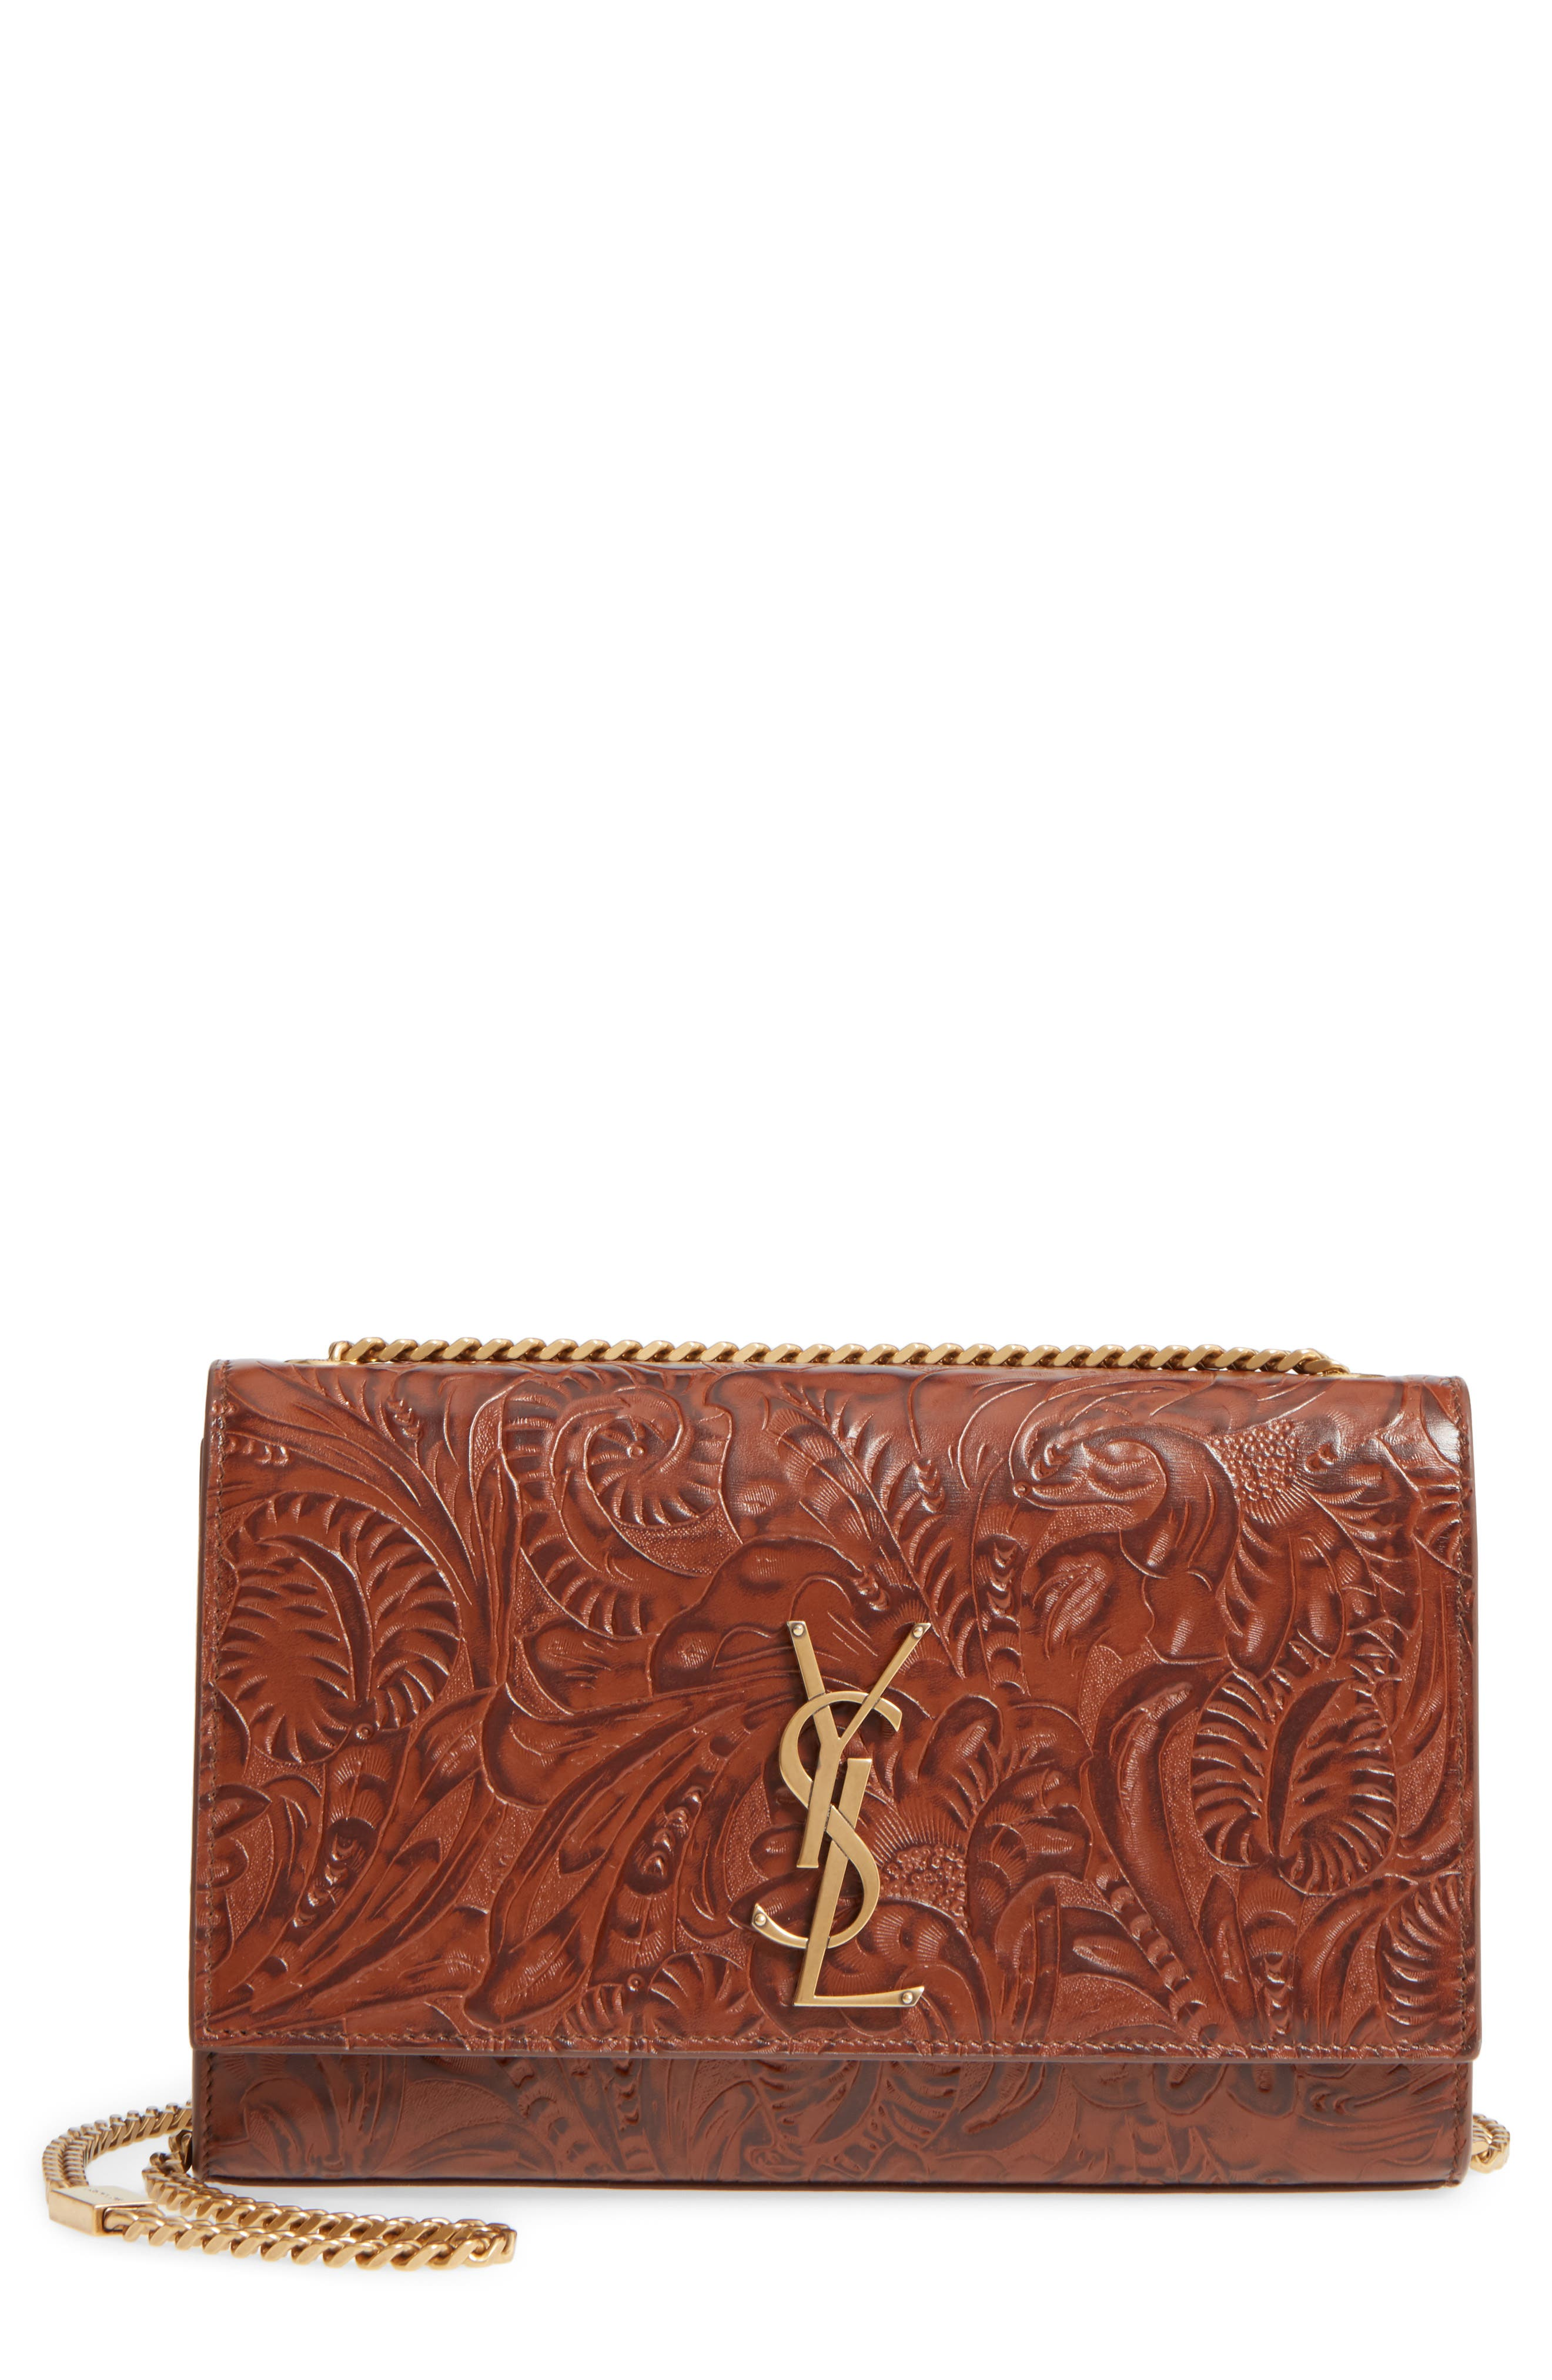 Medium Kate Floral Tooling Embossed Leather Crossbody Bag,                             Main thumbnail 1, color,                             233